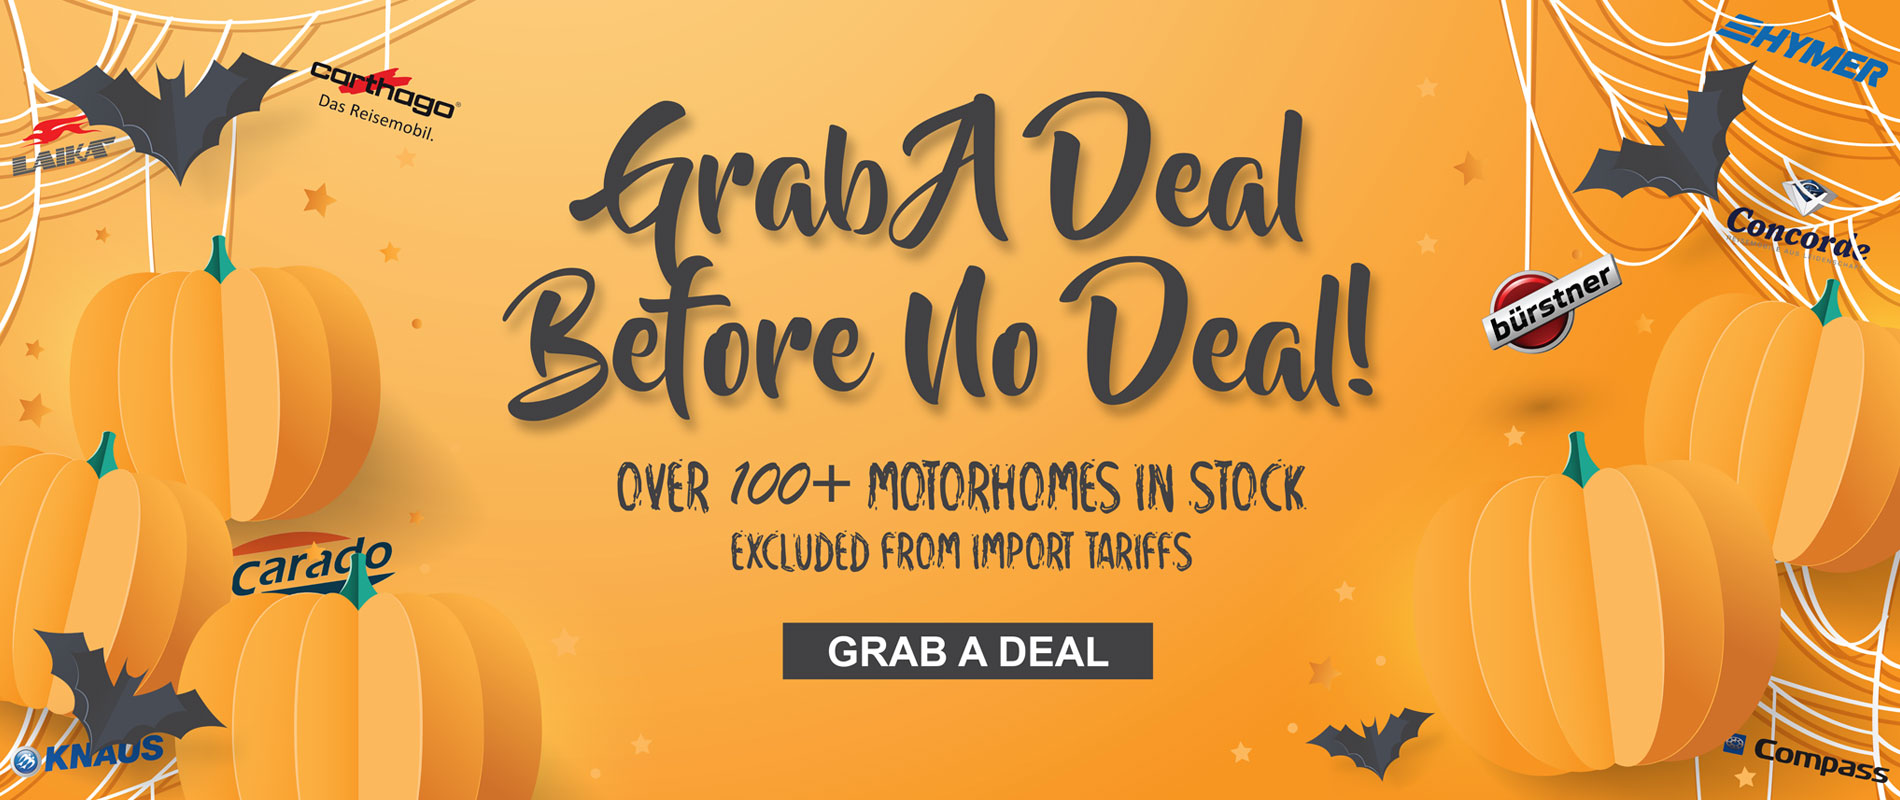 Grab A Deal Before No Deal - Halloween